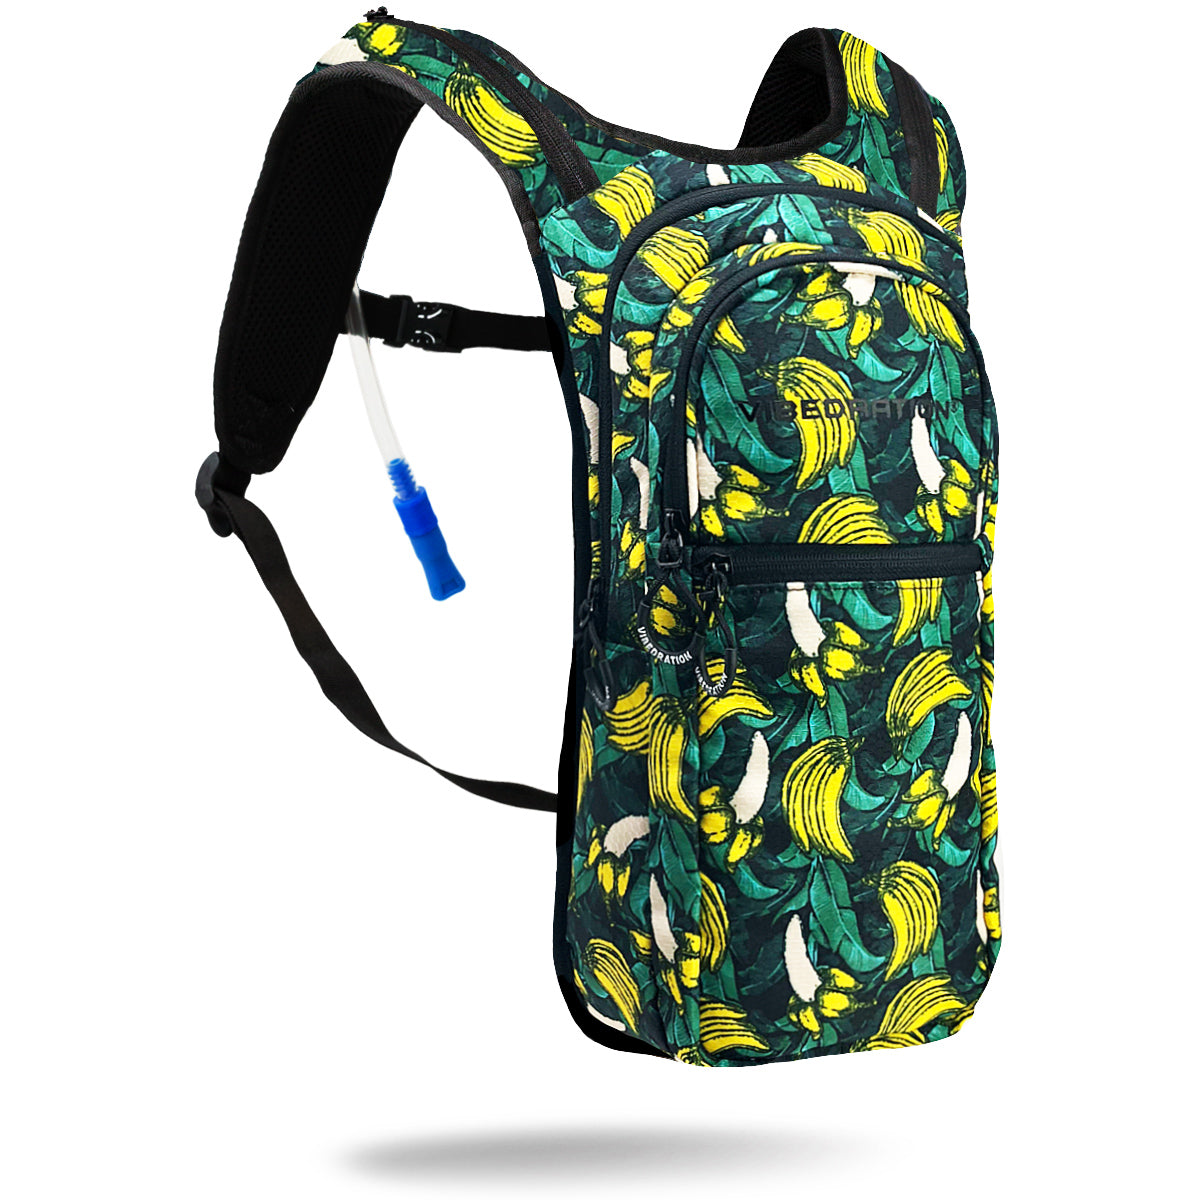 Green Tropical Banana Printed VIP 2.0L Festival Hydration Backpack